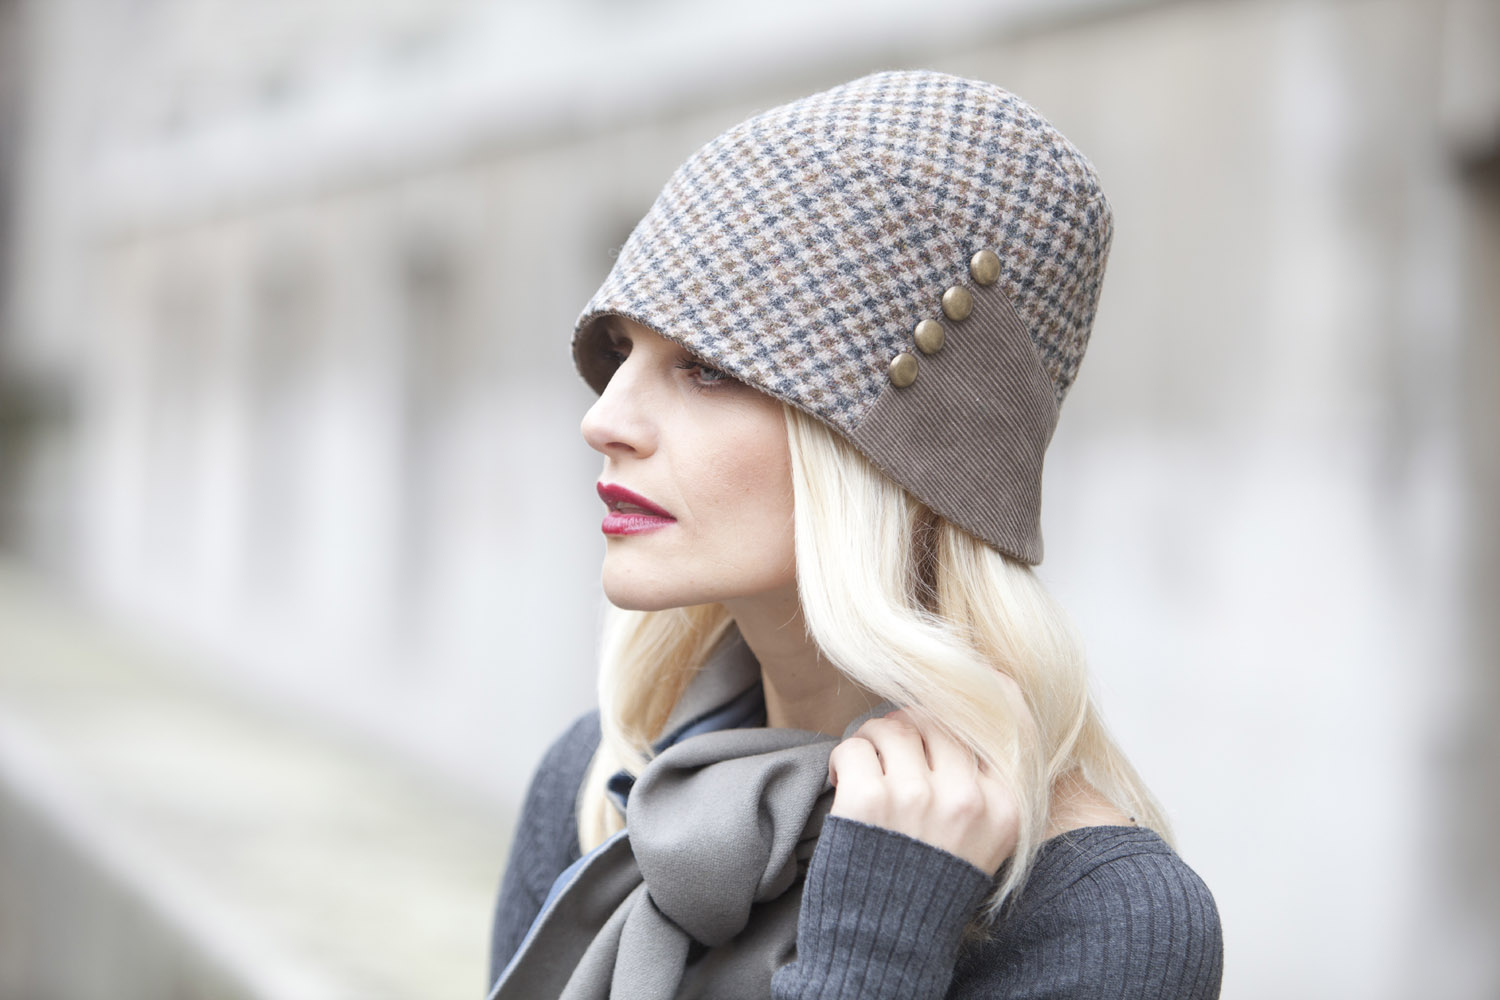 'Virginia' cloche hat